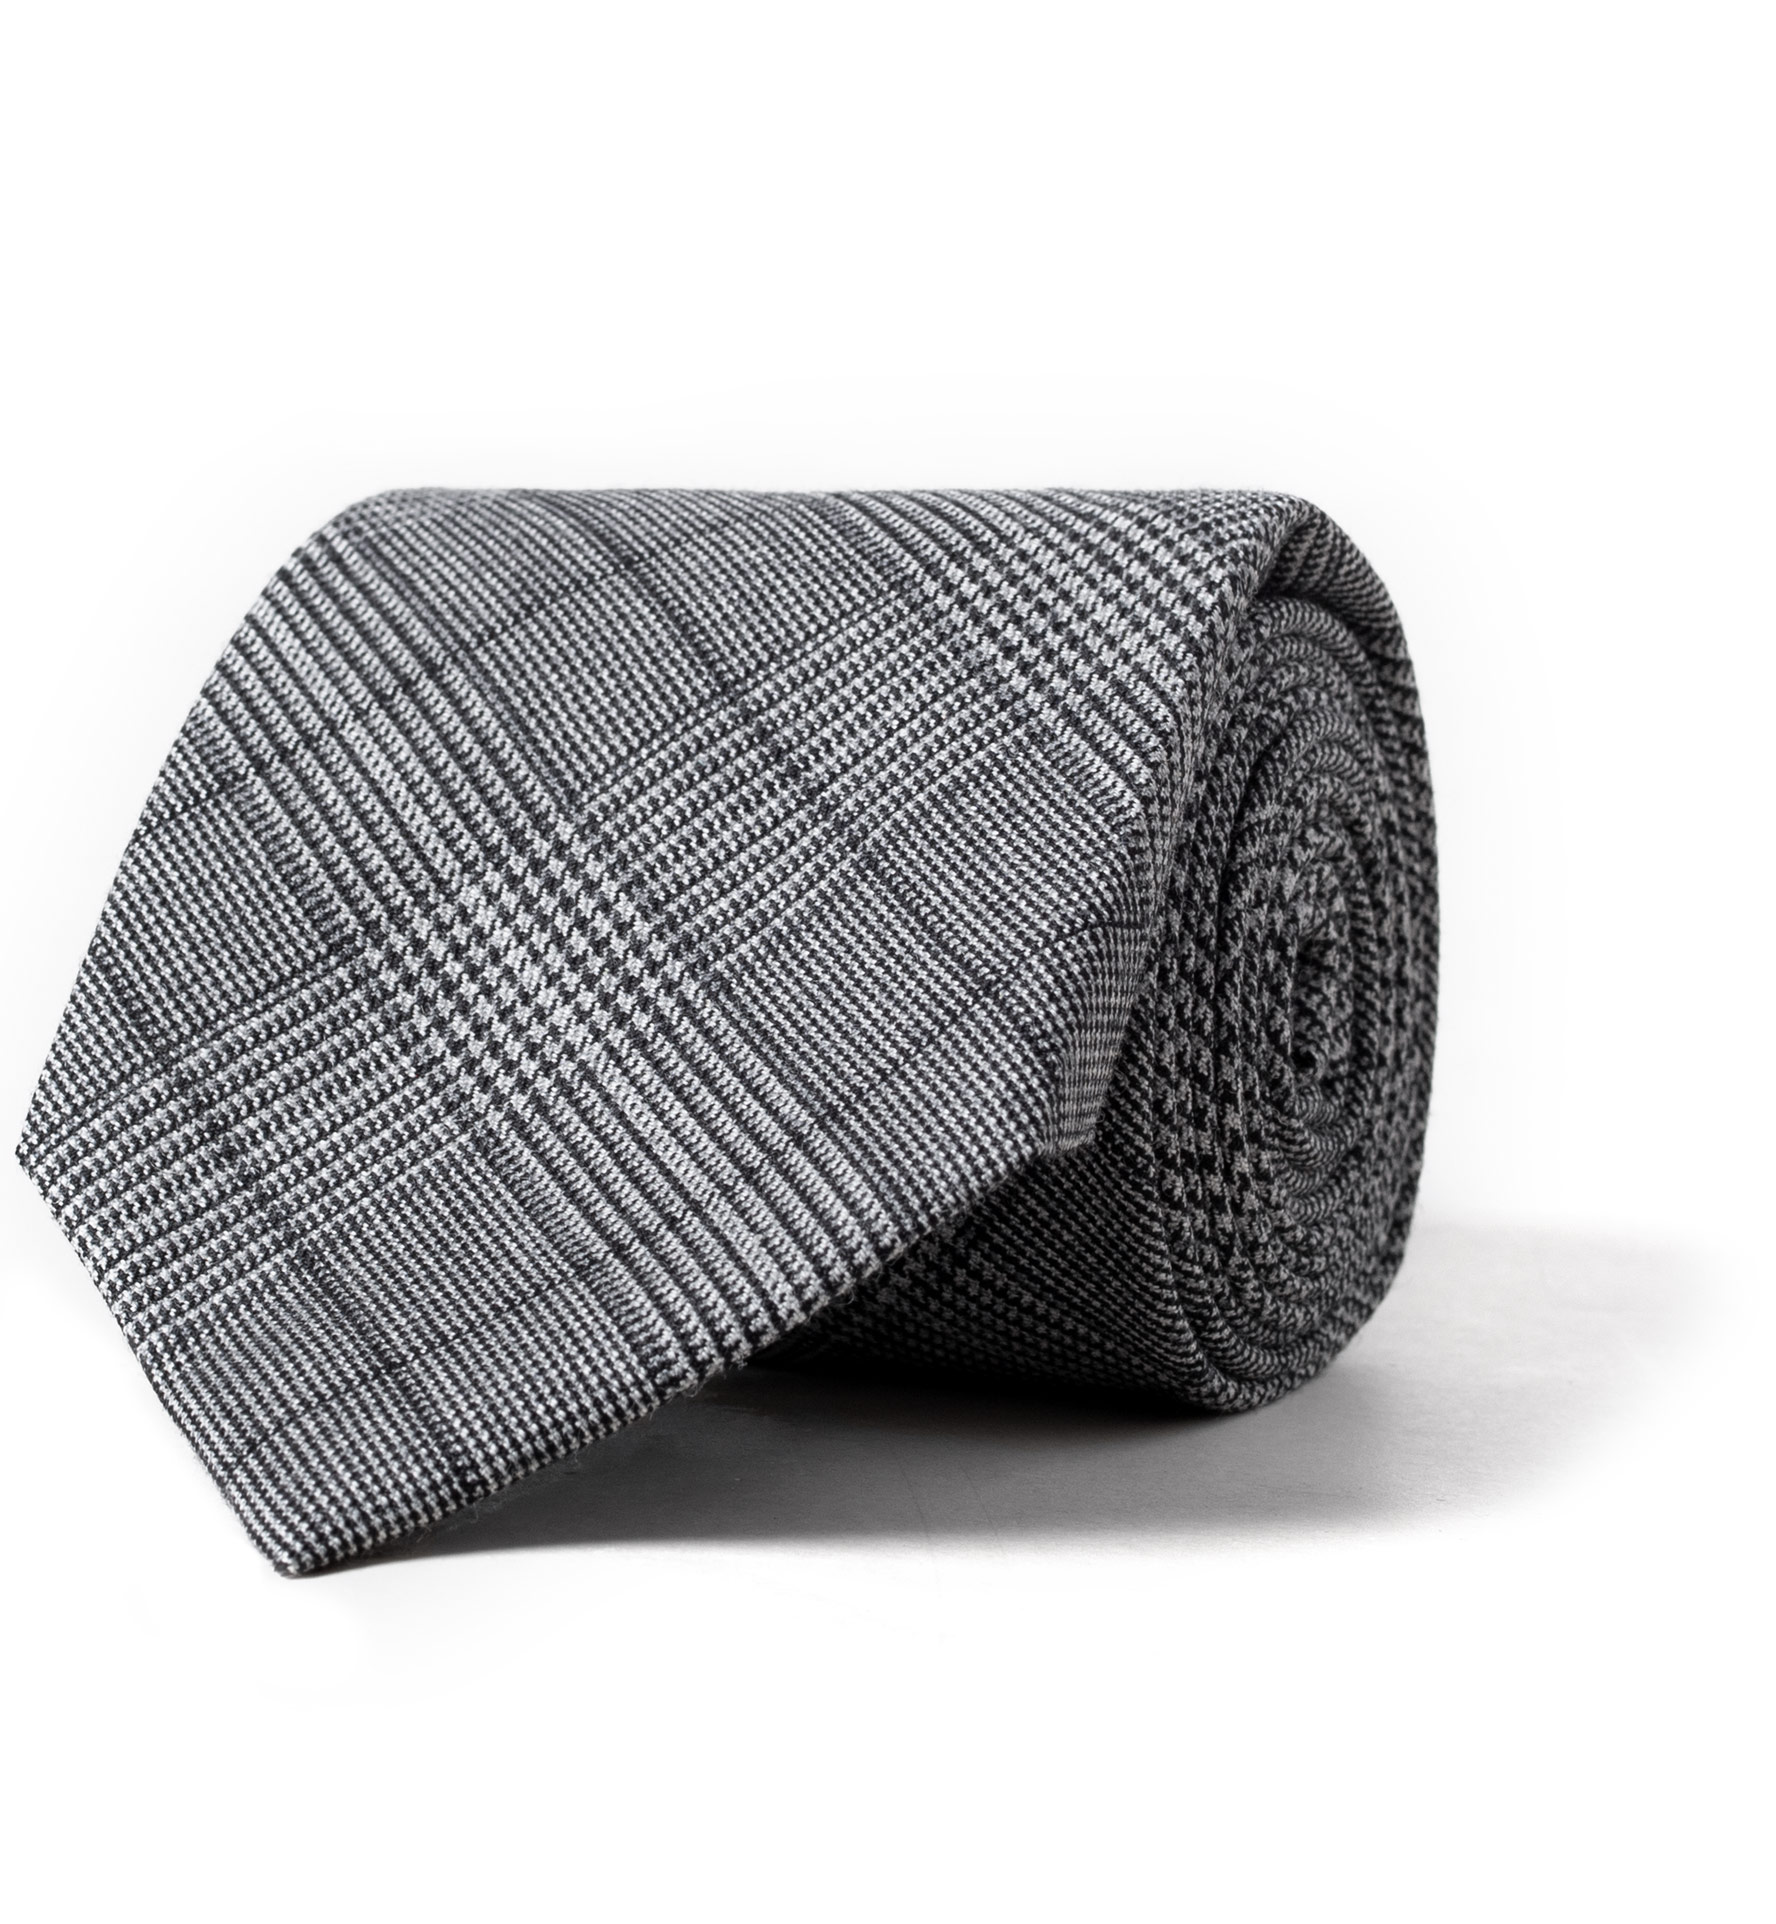 Zoom Image of Grey Prince of Wales Check Wool Tie